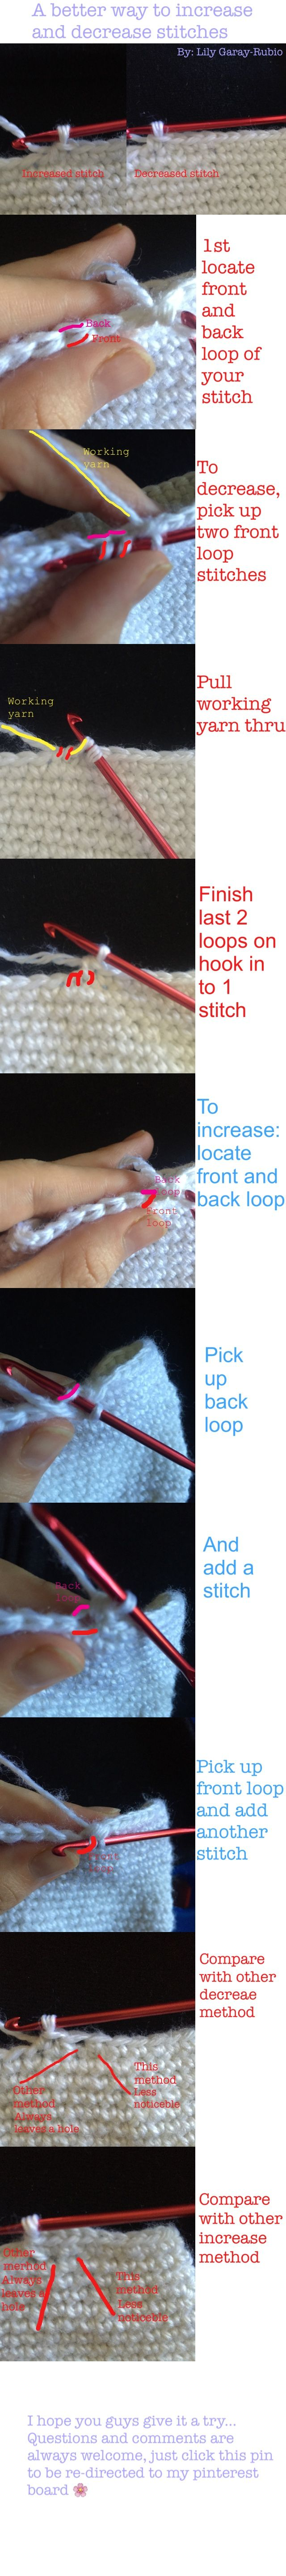 How to increase and decrease crochet stitches for beginners ... Easy step-by-step photo tutorial and comparison.